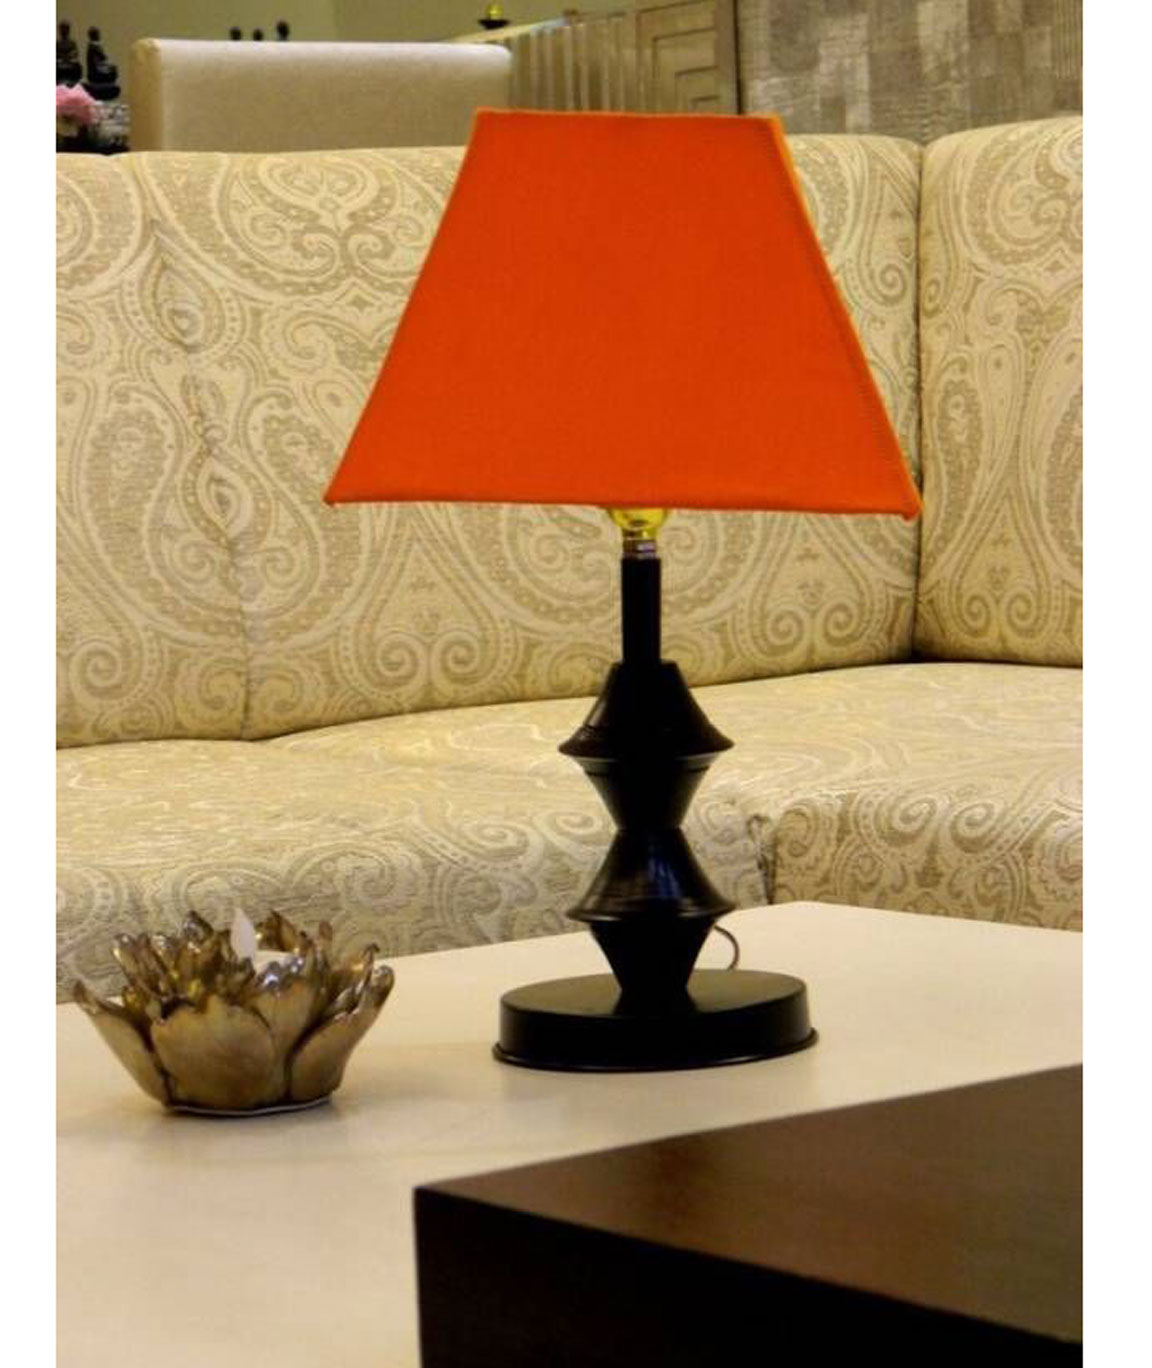 RDC Black Double Ring Stand Table Lamp with 8 Inches Square Plain Orange Lamp Shade